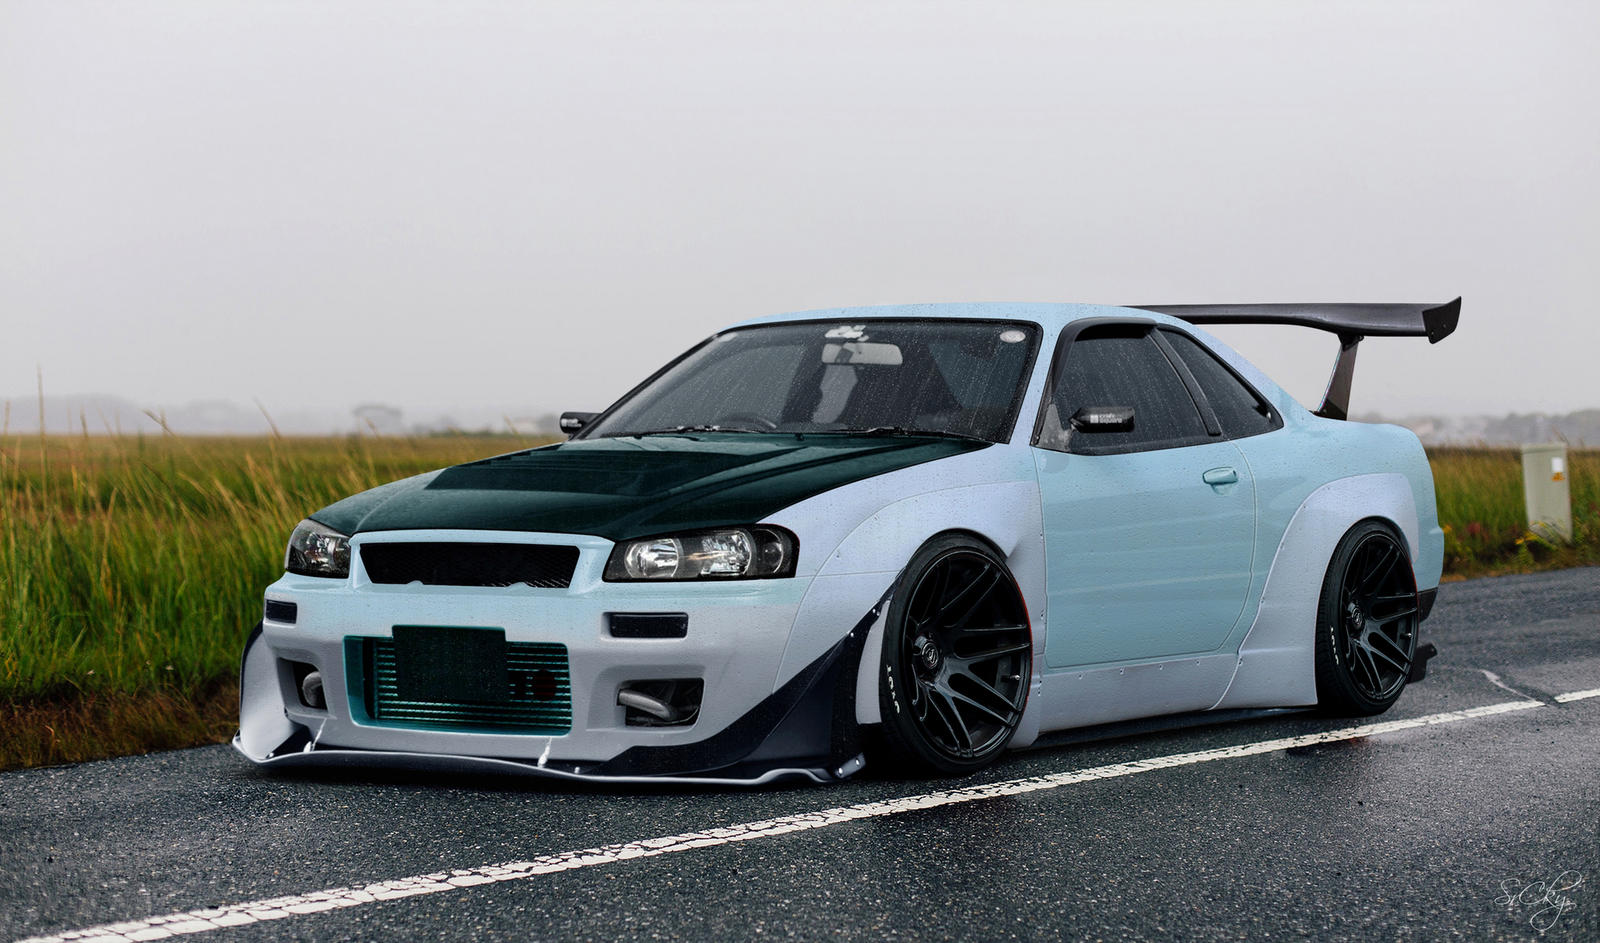 Car Body Kits >> Nissan Skyline R34 Body Kit by SrCky on DeviantArt